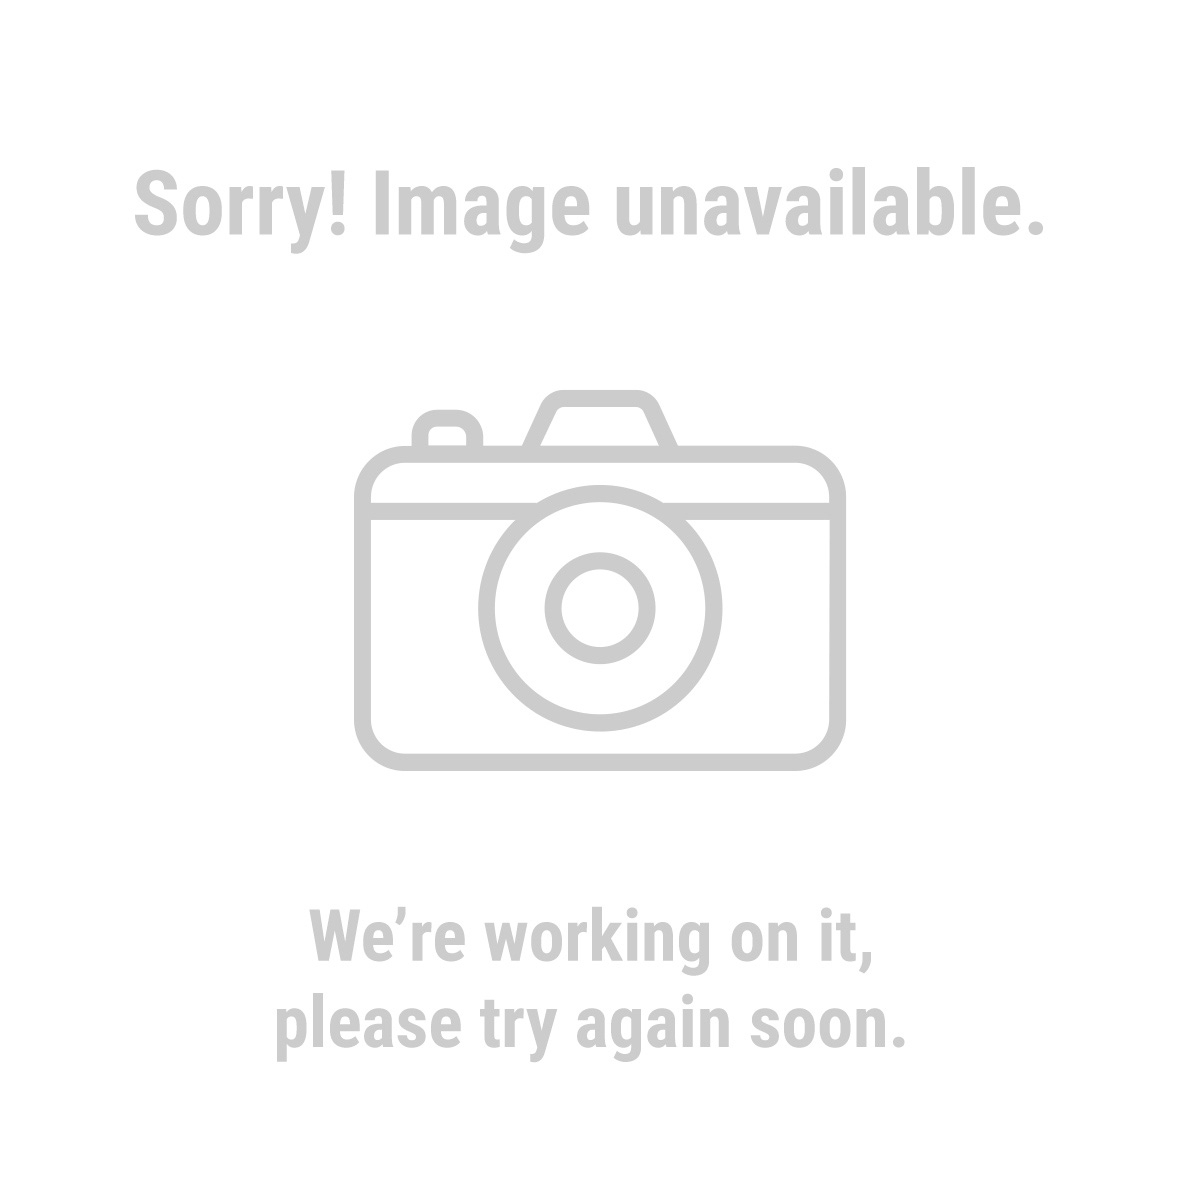 Warrior 69070 11 Piece Carbon Steel Hole Saw Set